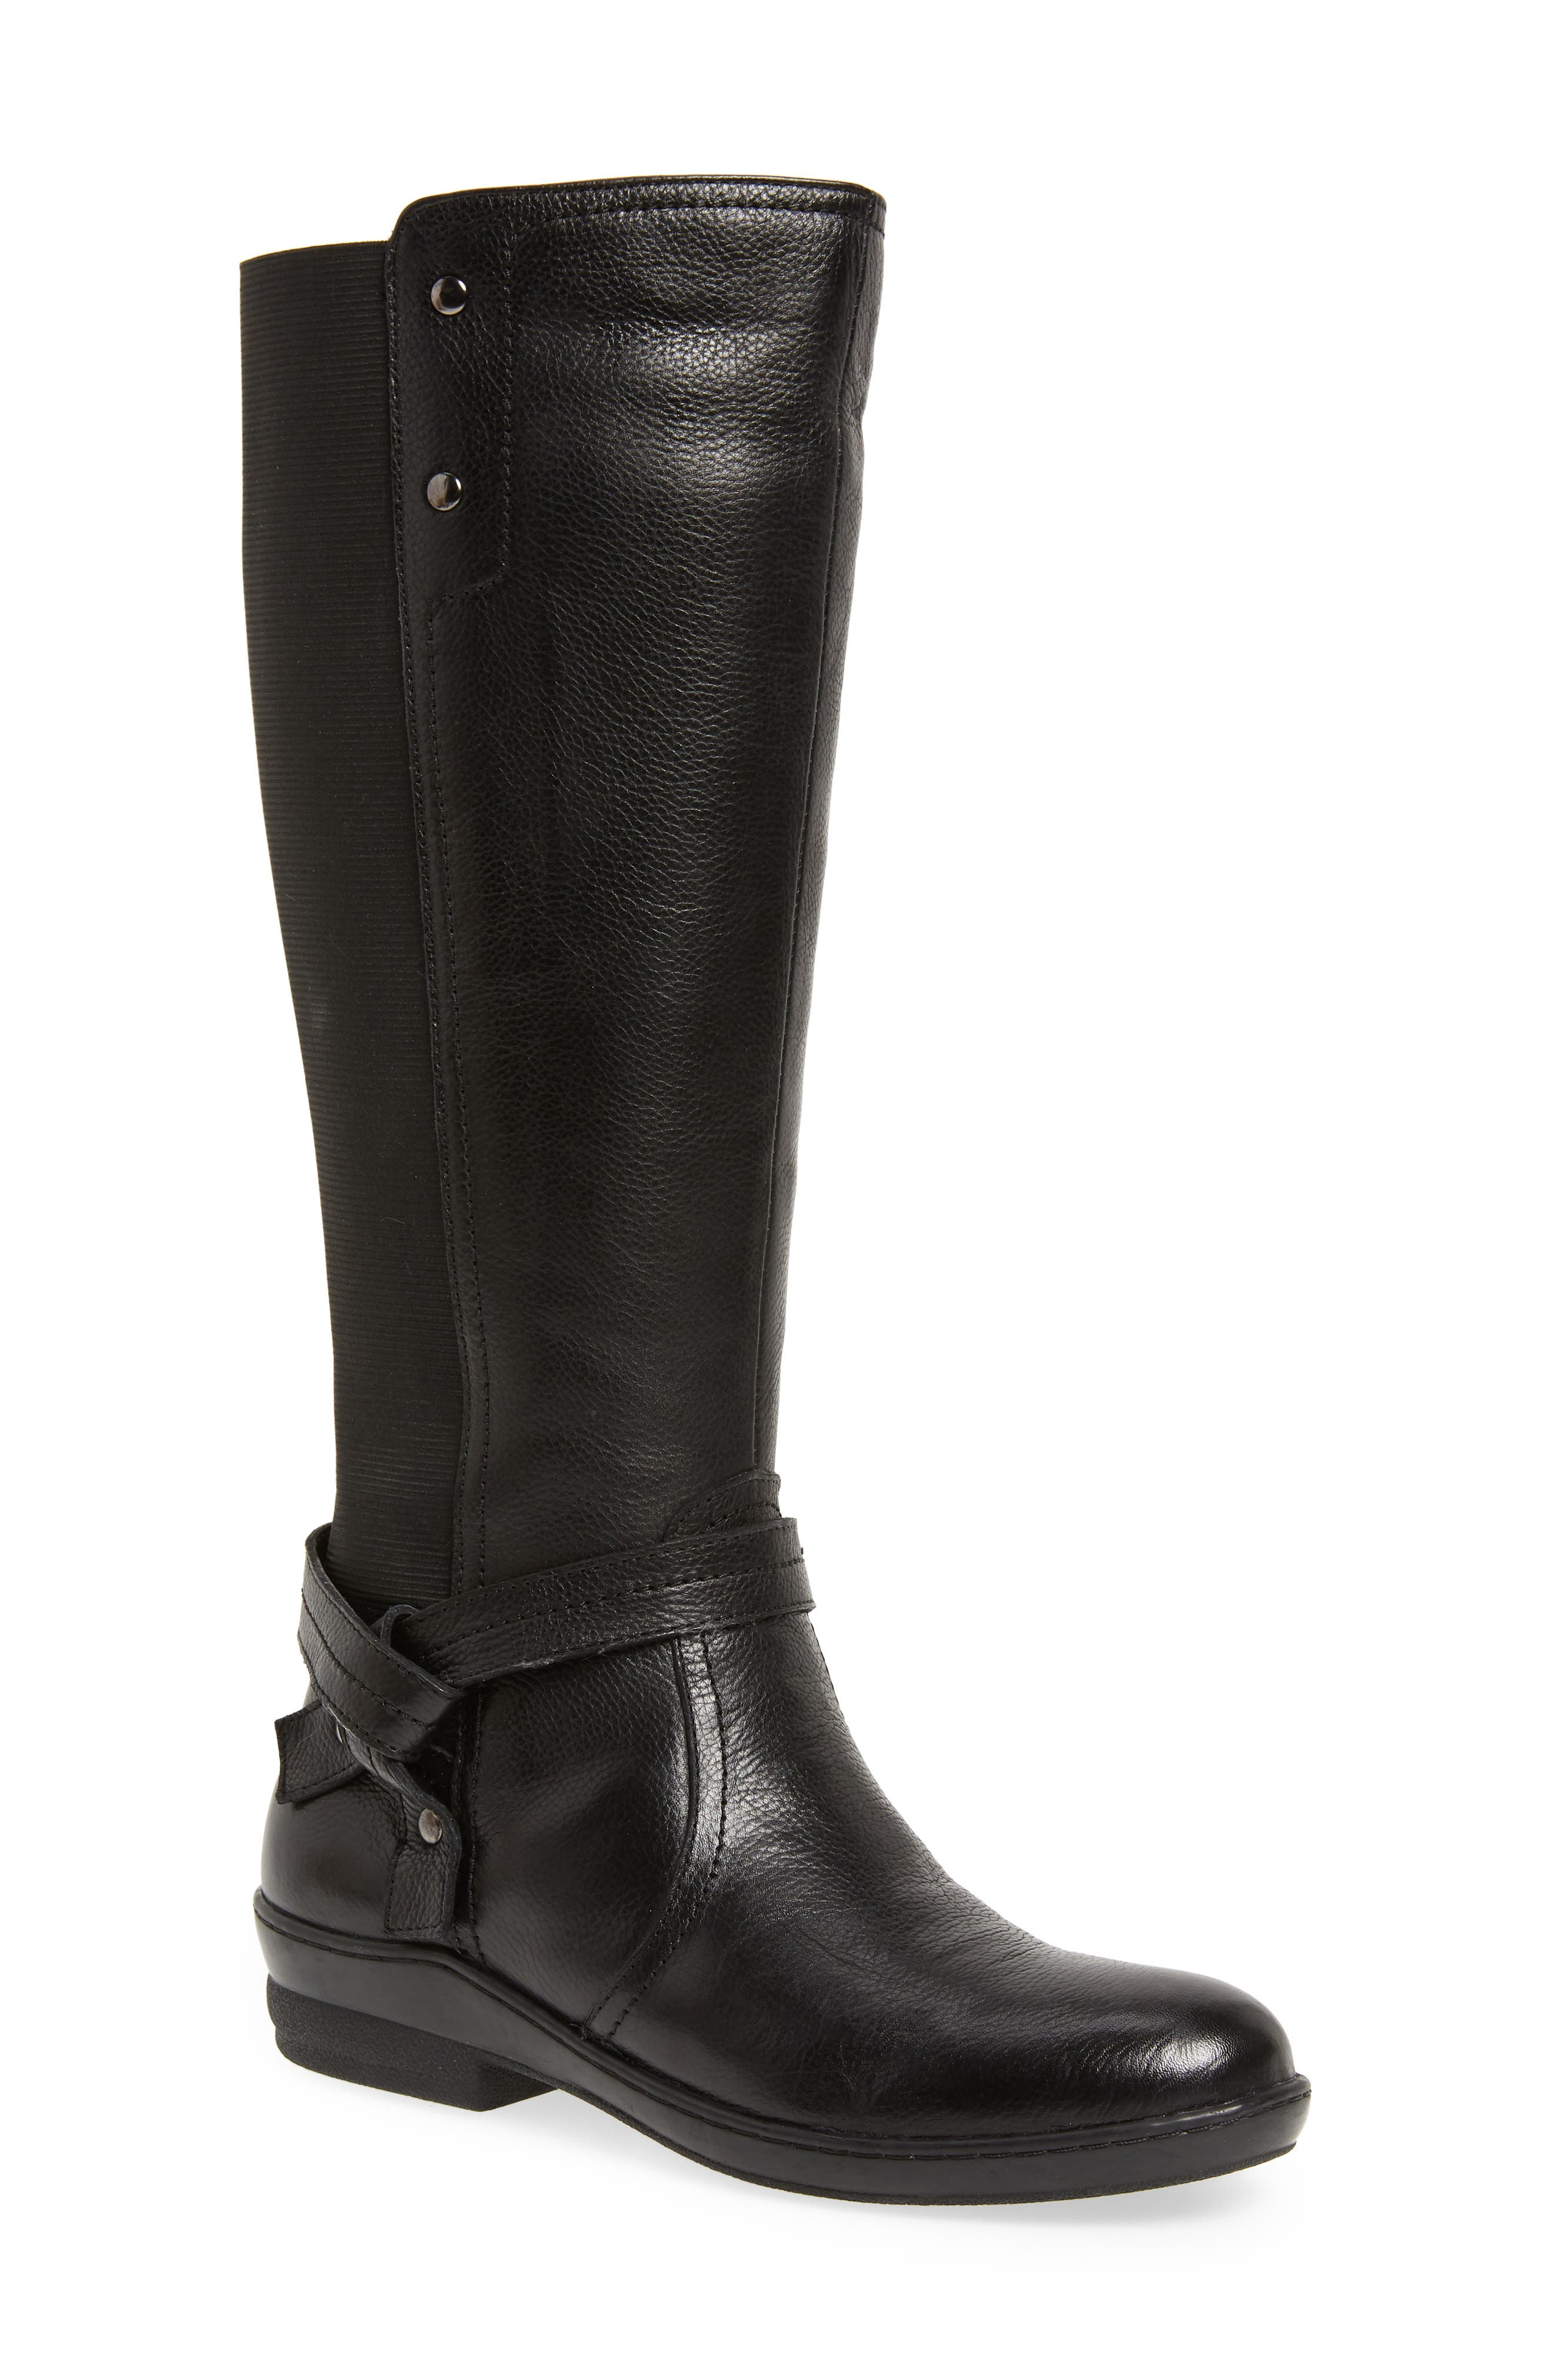 DAVID TATE, Memphis 16 Stretch Back Boot, Main thumbnail 1, color, BLACK LEATHER